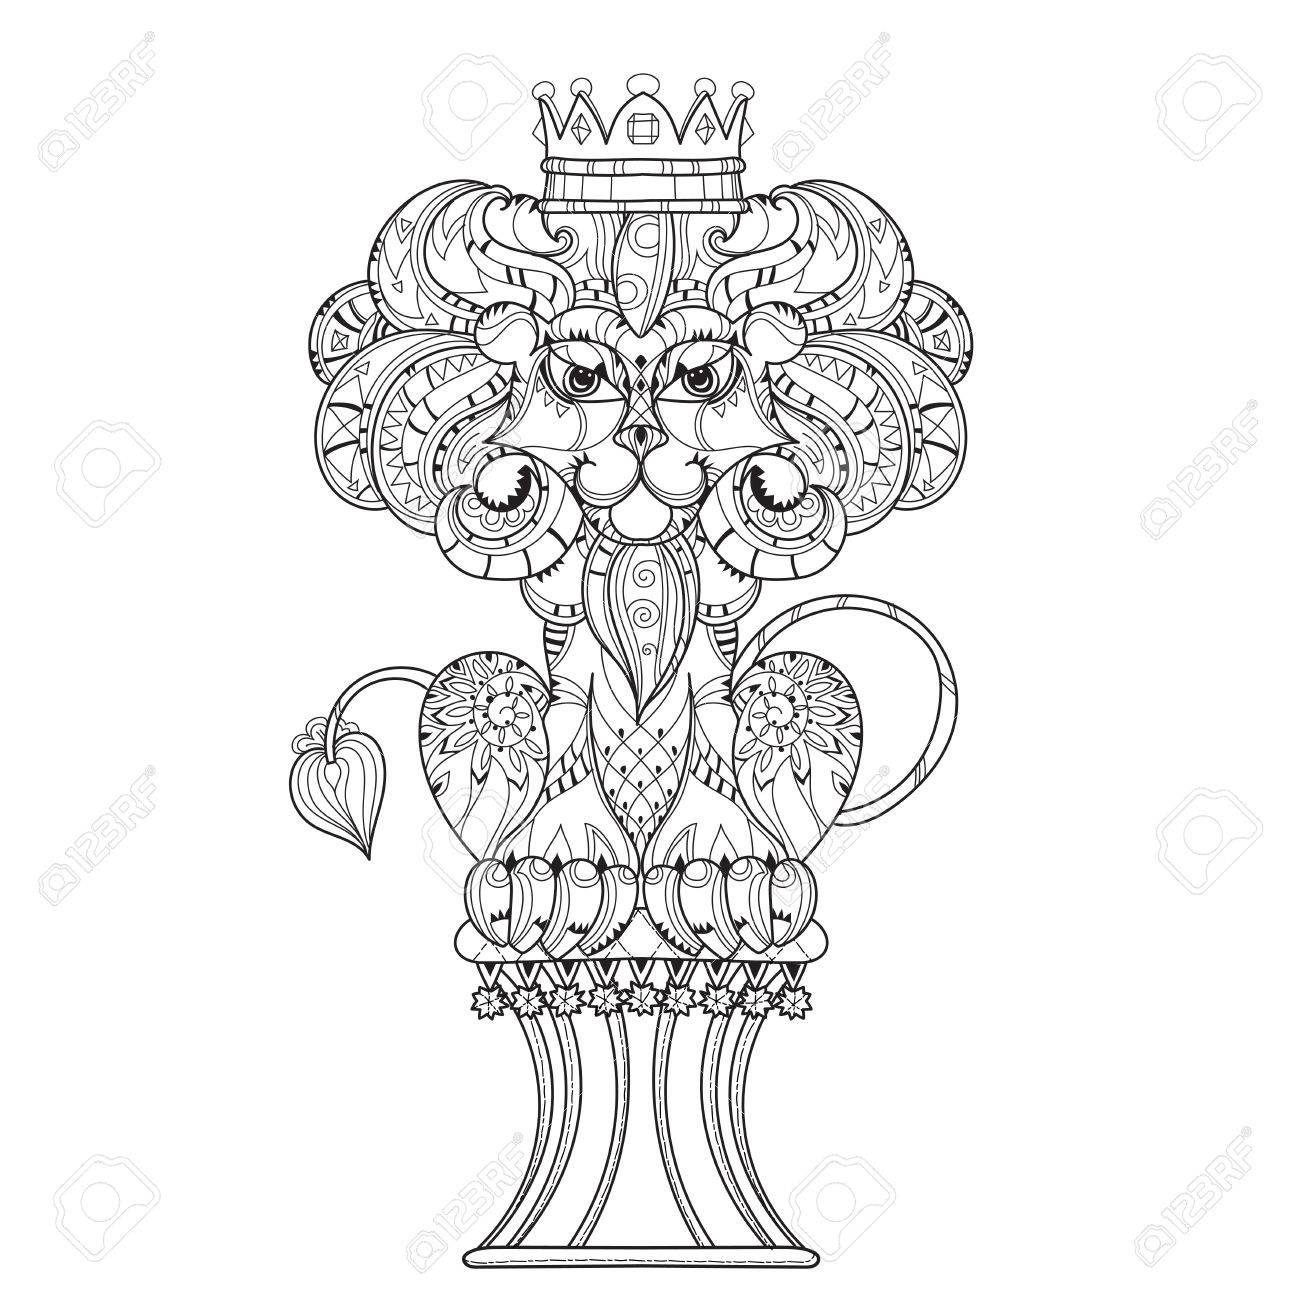 Hand Drawn Doodle Outline Lion Decorated With Crown Royalty Free Cliparts Vectors And Stock Illustration Image 56728295 Glass crown candle holder watch box dongguan crown win crown lip gloss tube lion sculpture tiaras and crowns 1,169 lion with crown products are offered for sale by suppliers on alibaba.com, of which bracelets & bangles accounts for 4%, metal crafts. 123rf com